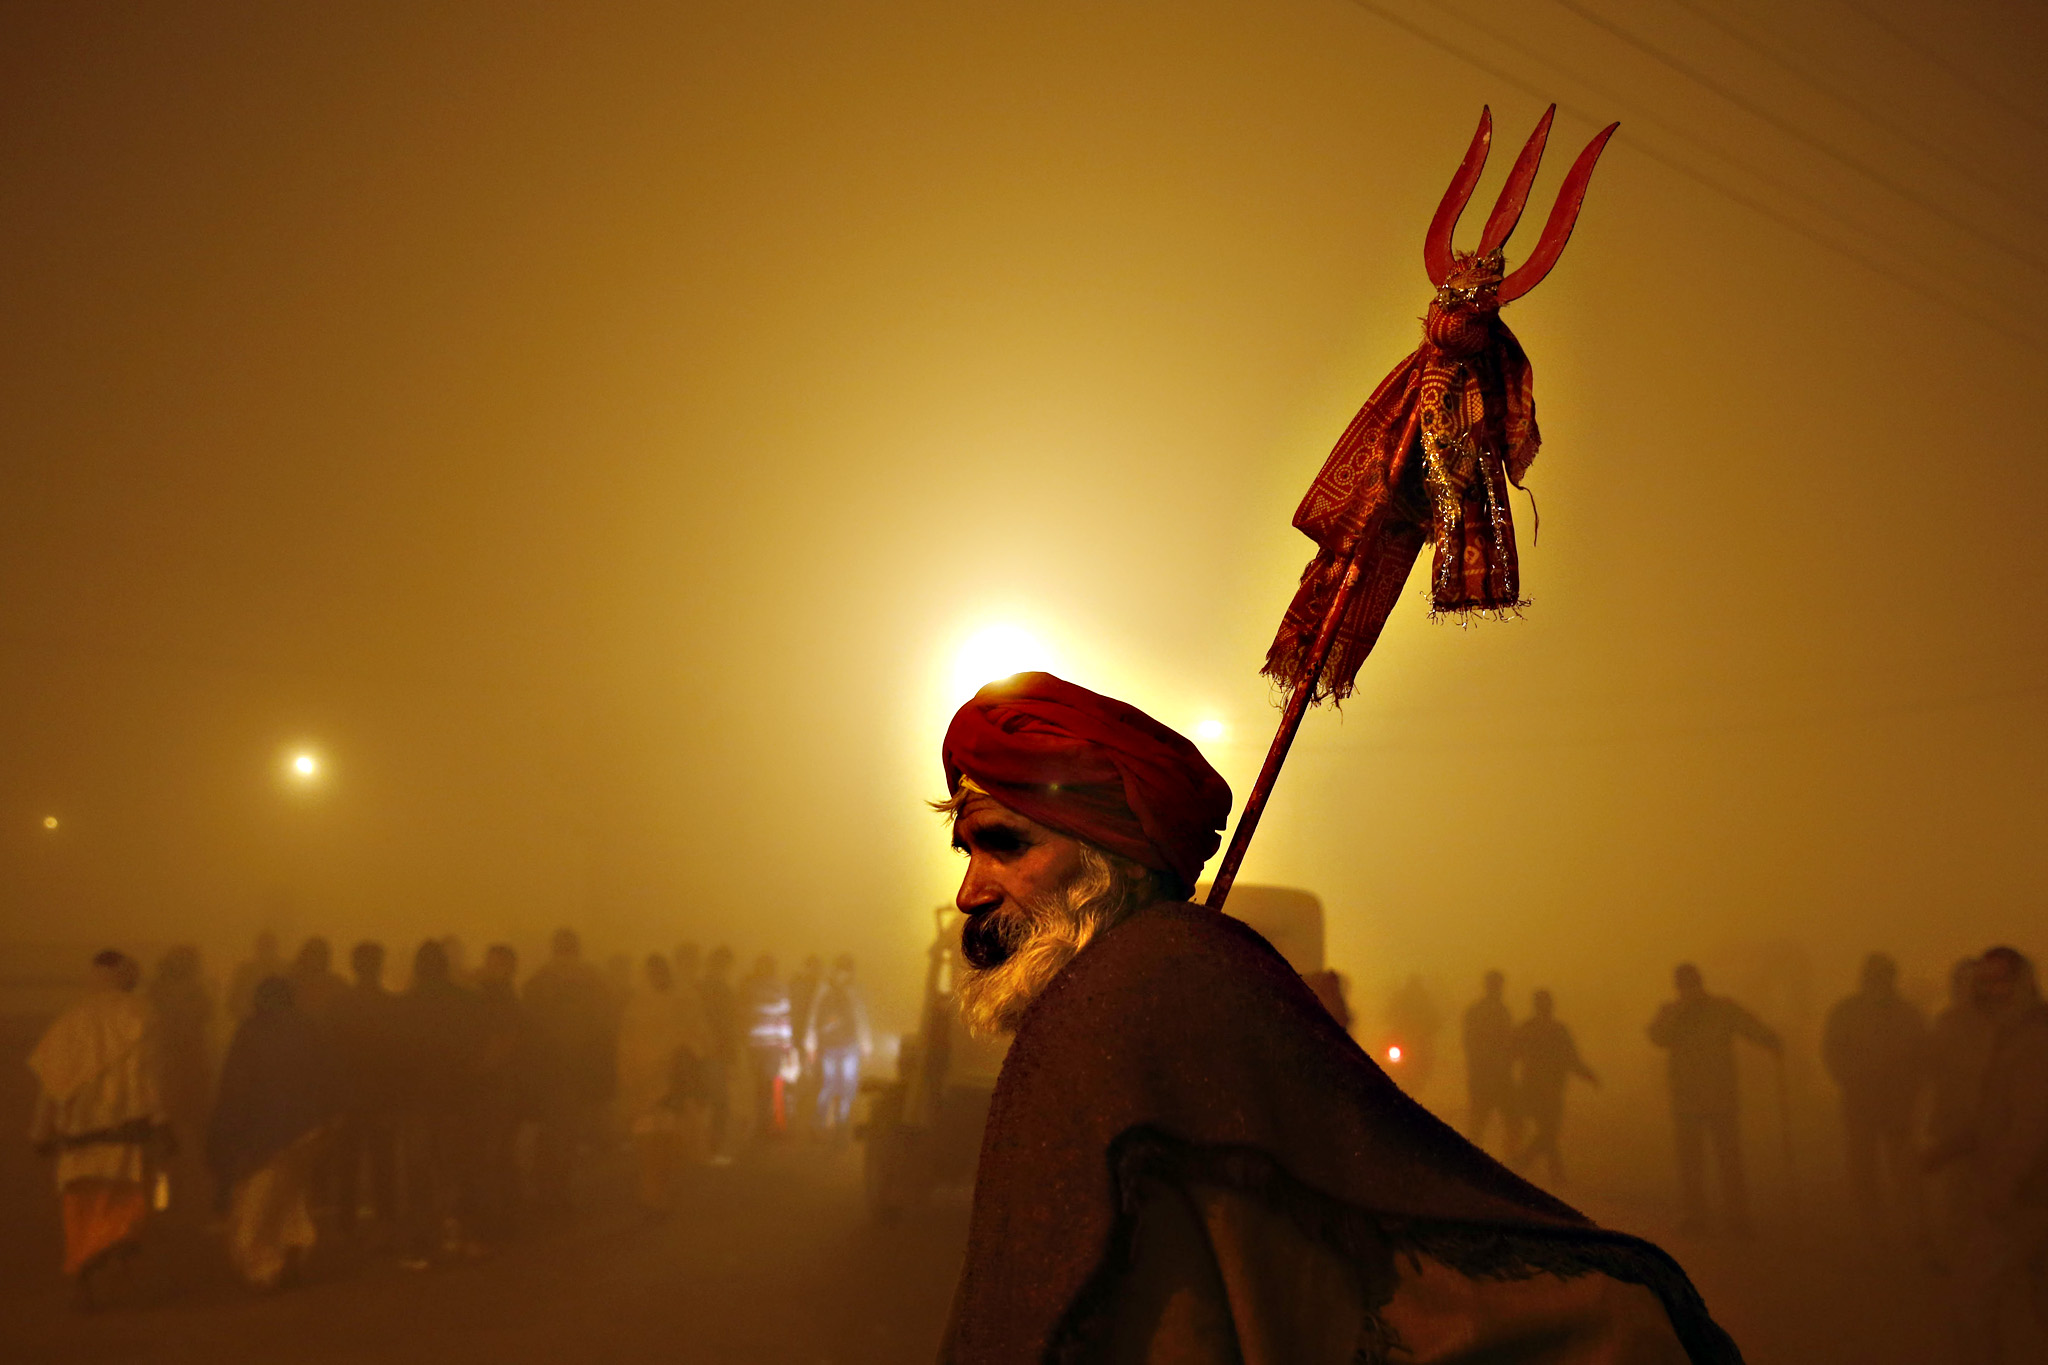 An Indian Hindu devotee arrives early morning at the banks of Sangam, the confluence of the Ganges, Yamuna and mythical Saraswati River, during the Makar Sankranti festival in Allahabad, India, Friday, Jan. 15, 2016. Makar Sankranti marks the beginning of the sun's northward movement according to the solar calendar and considered to be auspicious.